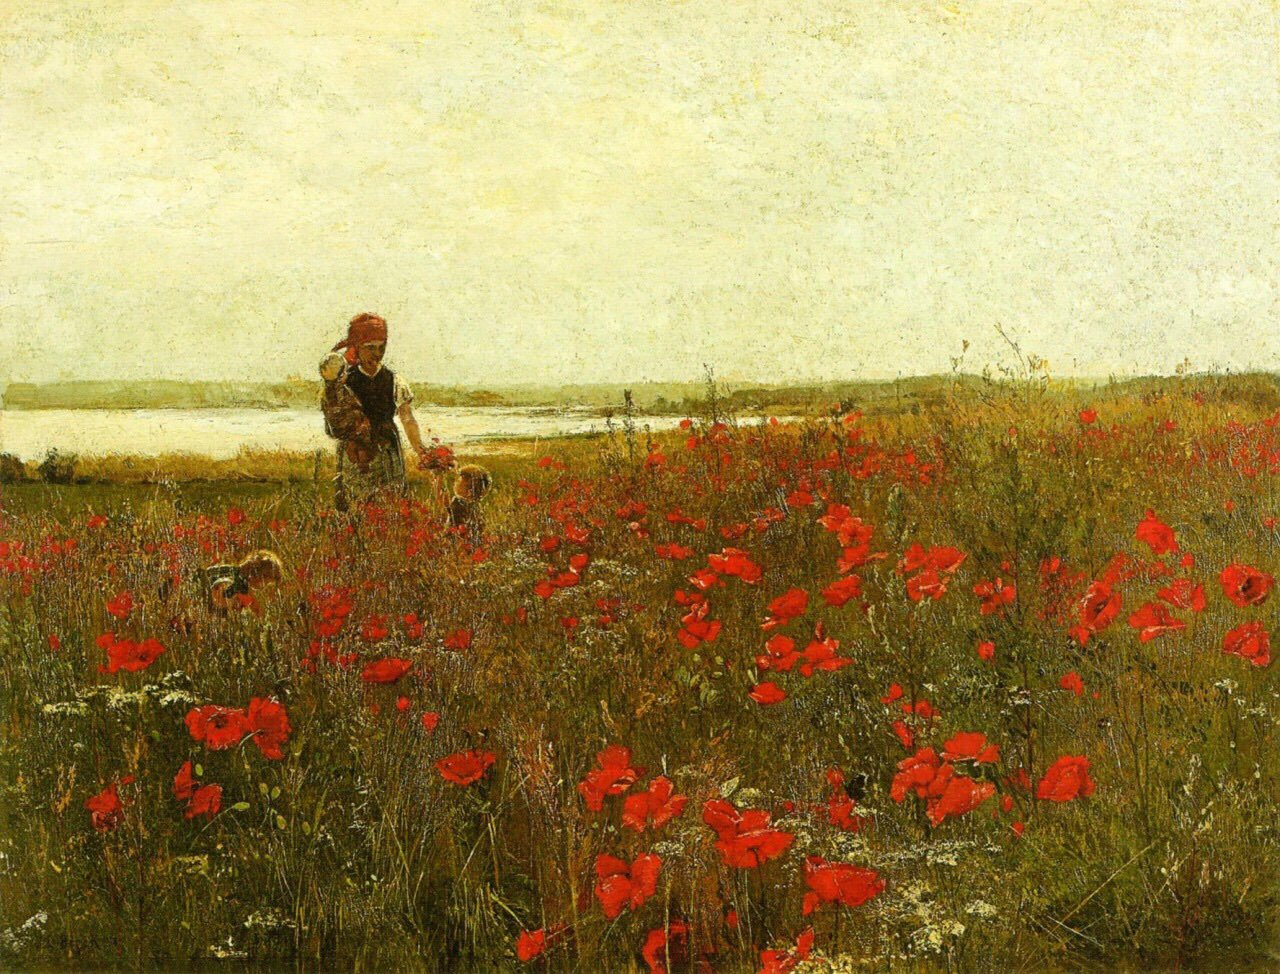 Poppies  John Leslie Breck 1860-1899 https://t.co/pFXrurR9hh